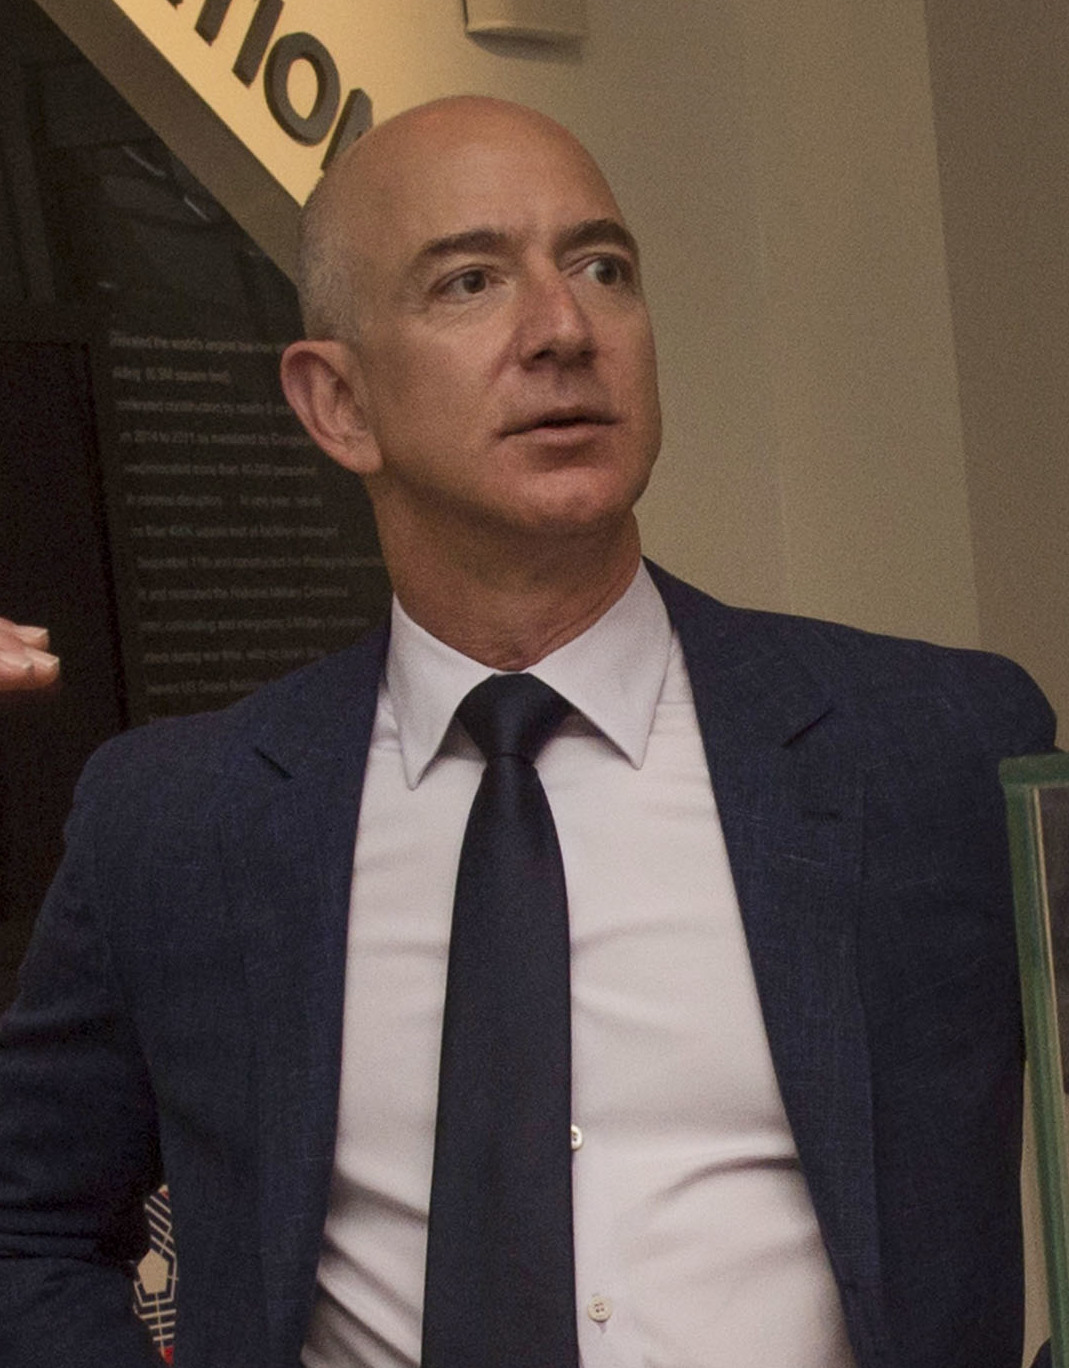 jeff bezos le plus riche du monde